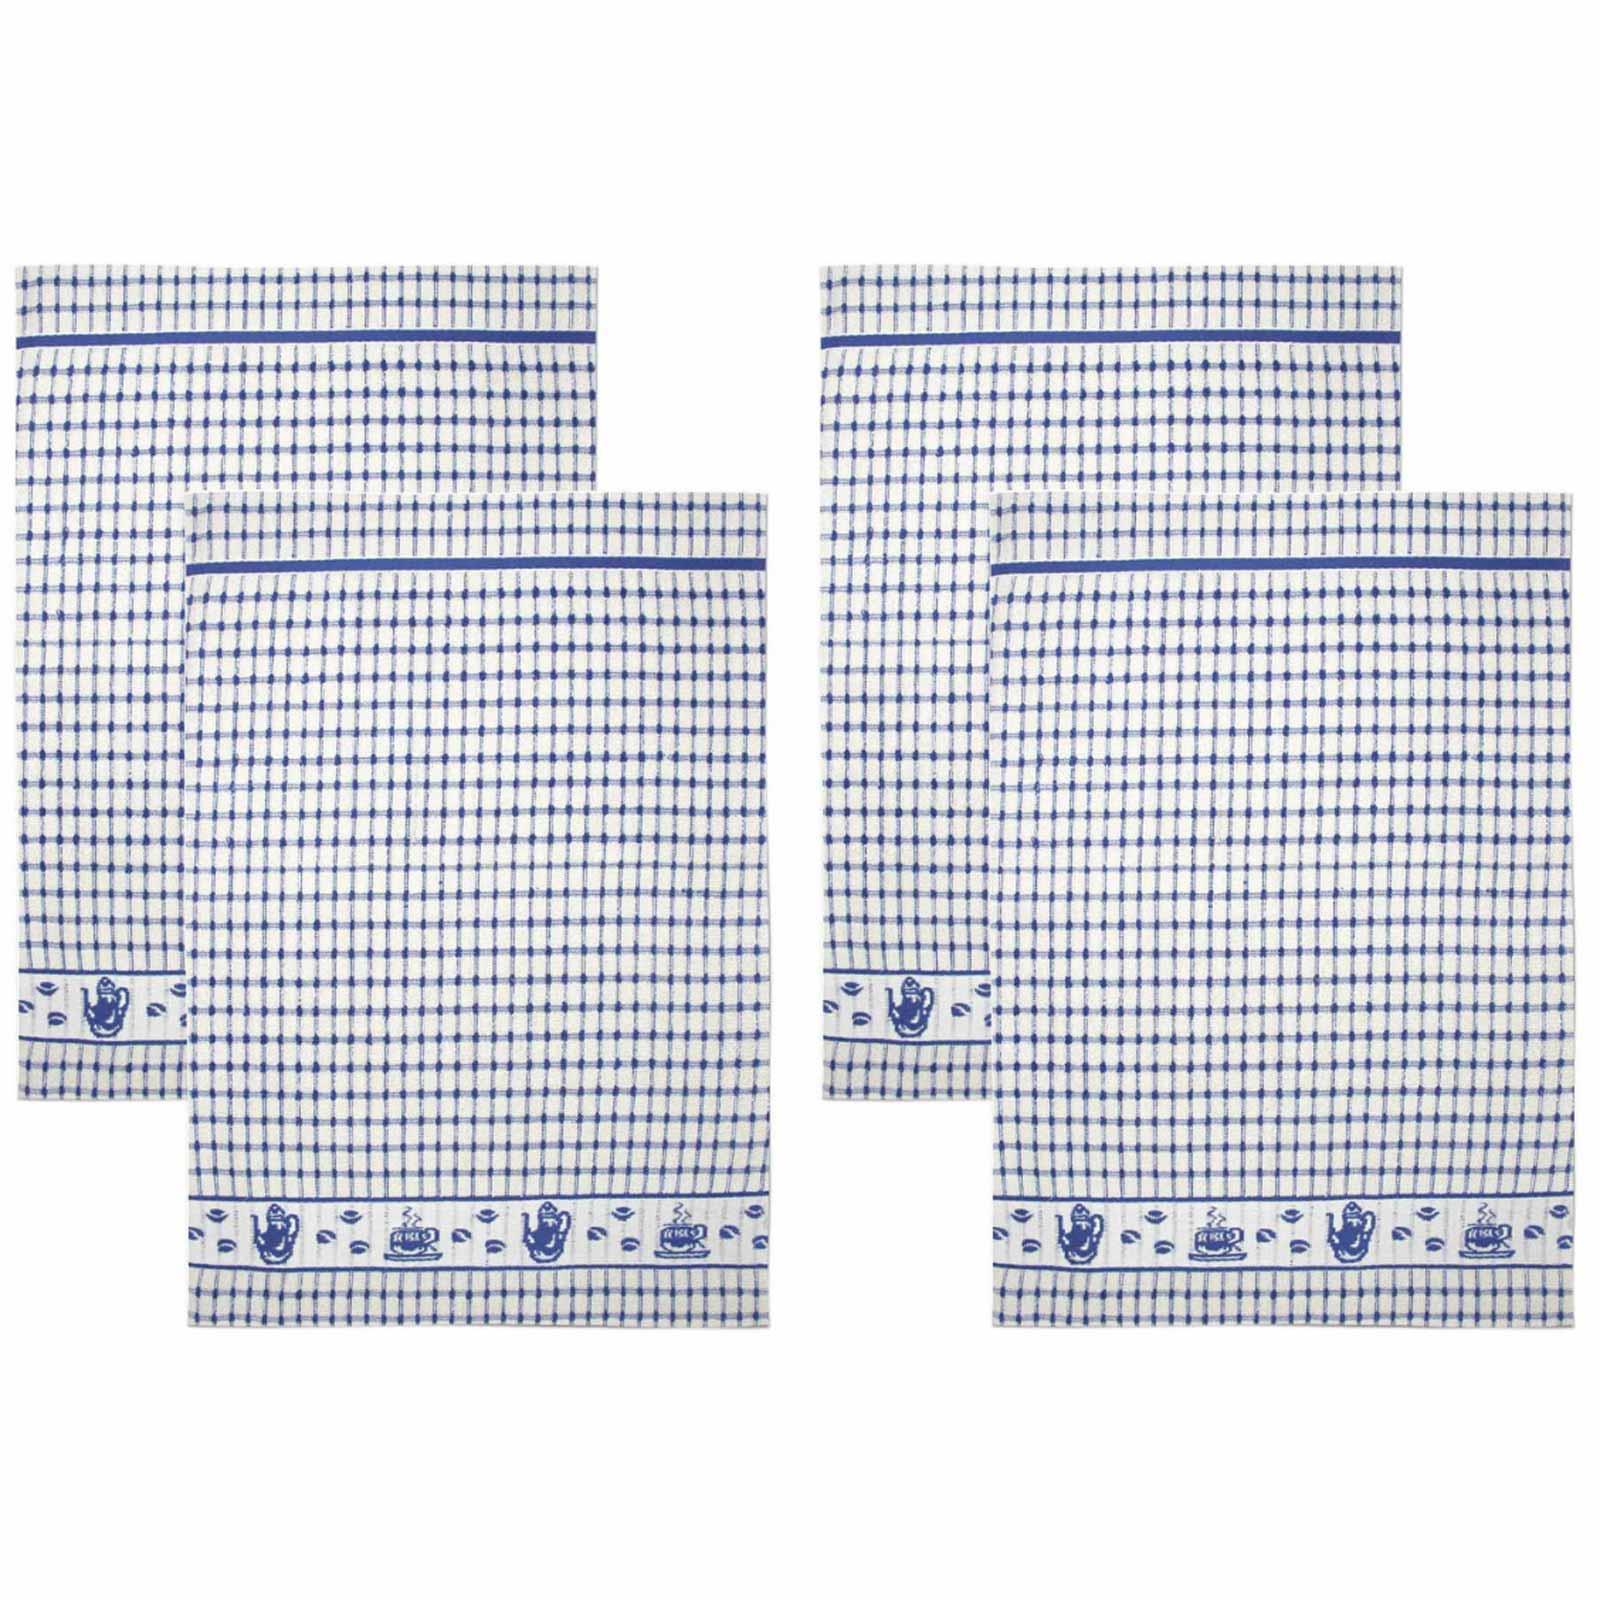 Packs-of-2-4-6-12-Tea-Towels-100-Cotton-Terry-Kitchen-Dish-Drying-Towel-Sets thumbnail 64